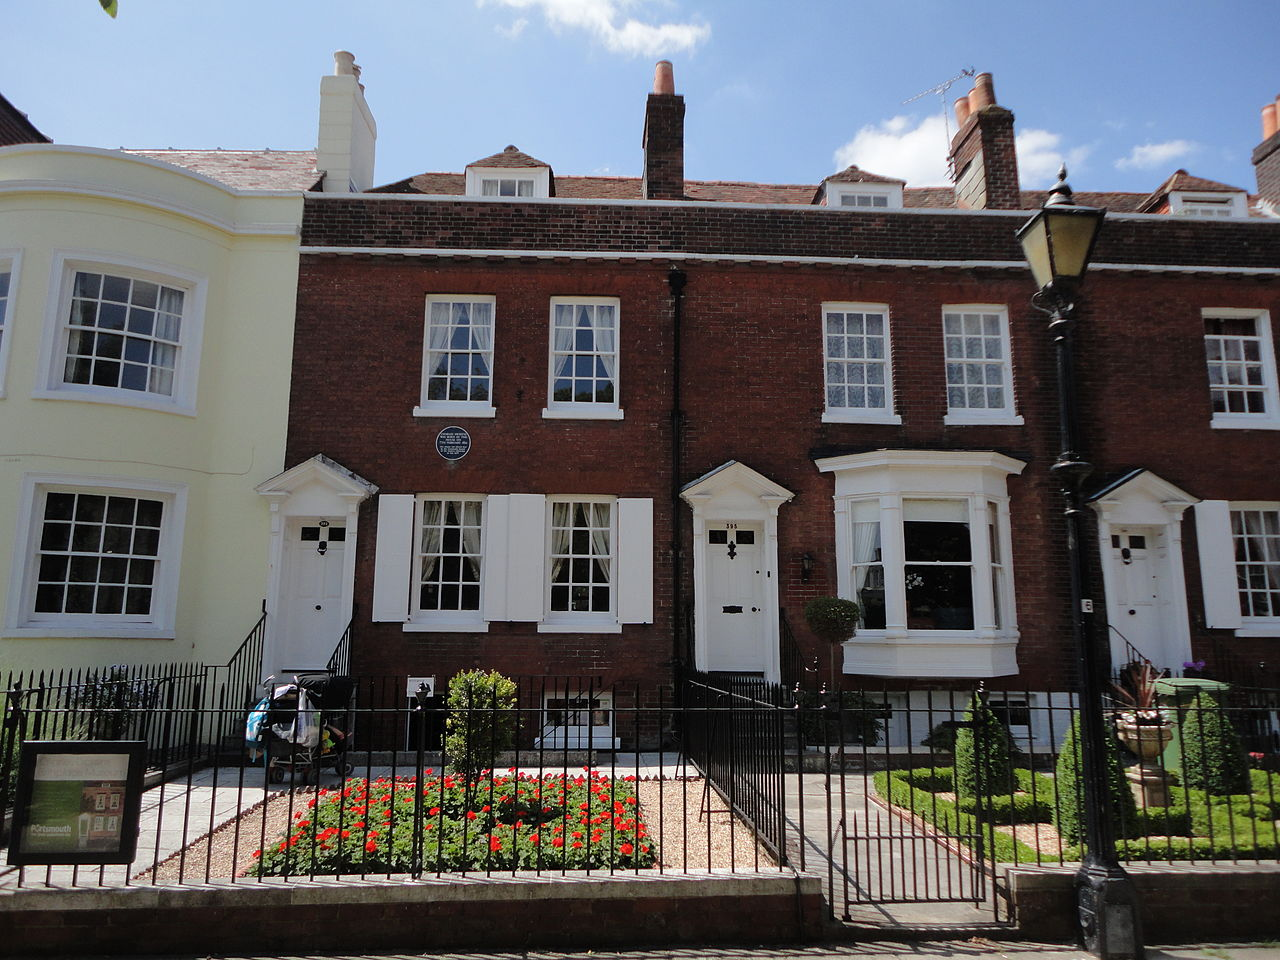 File charlesdickens house portsmouth jpg wikimedia commons for What does maison mean in english